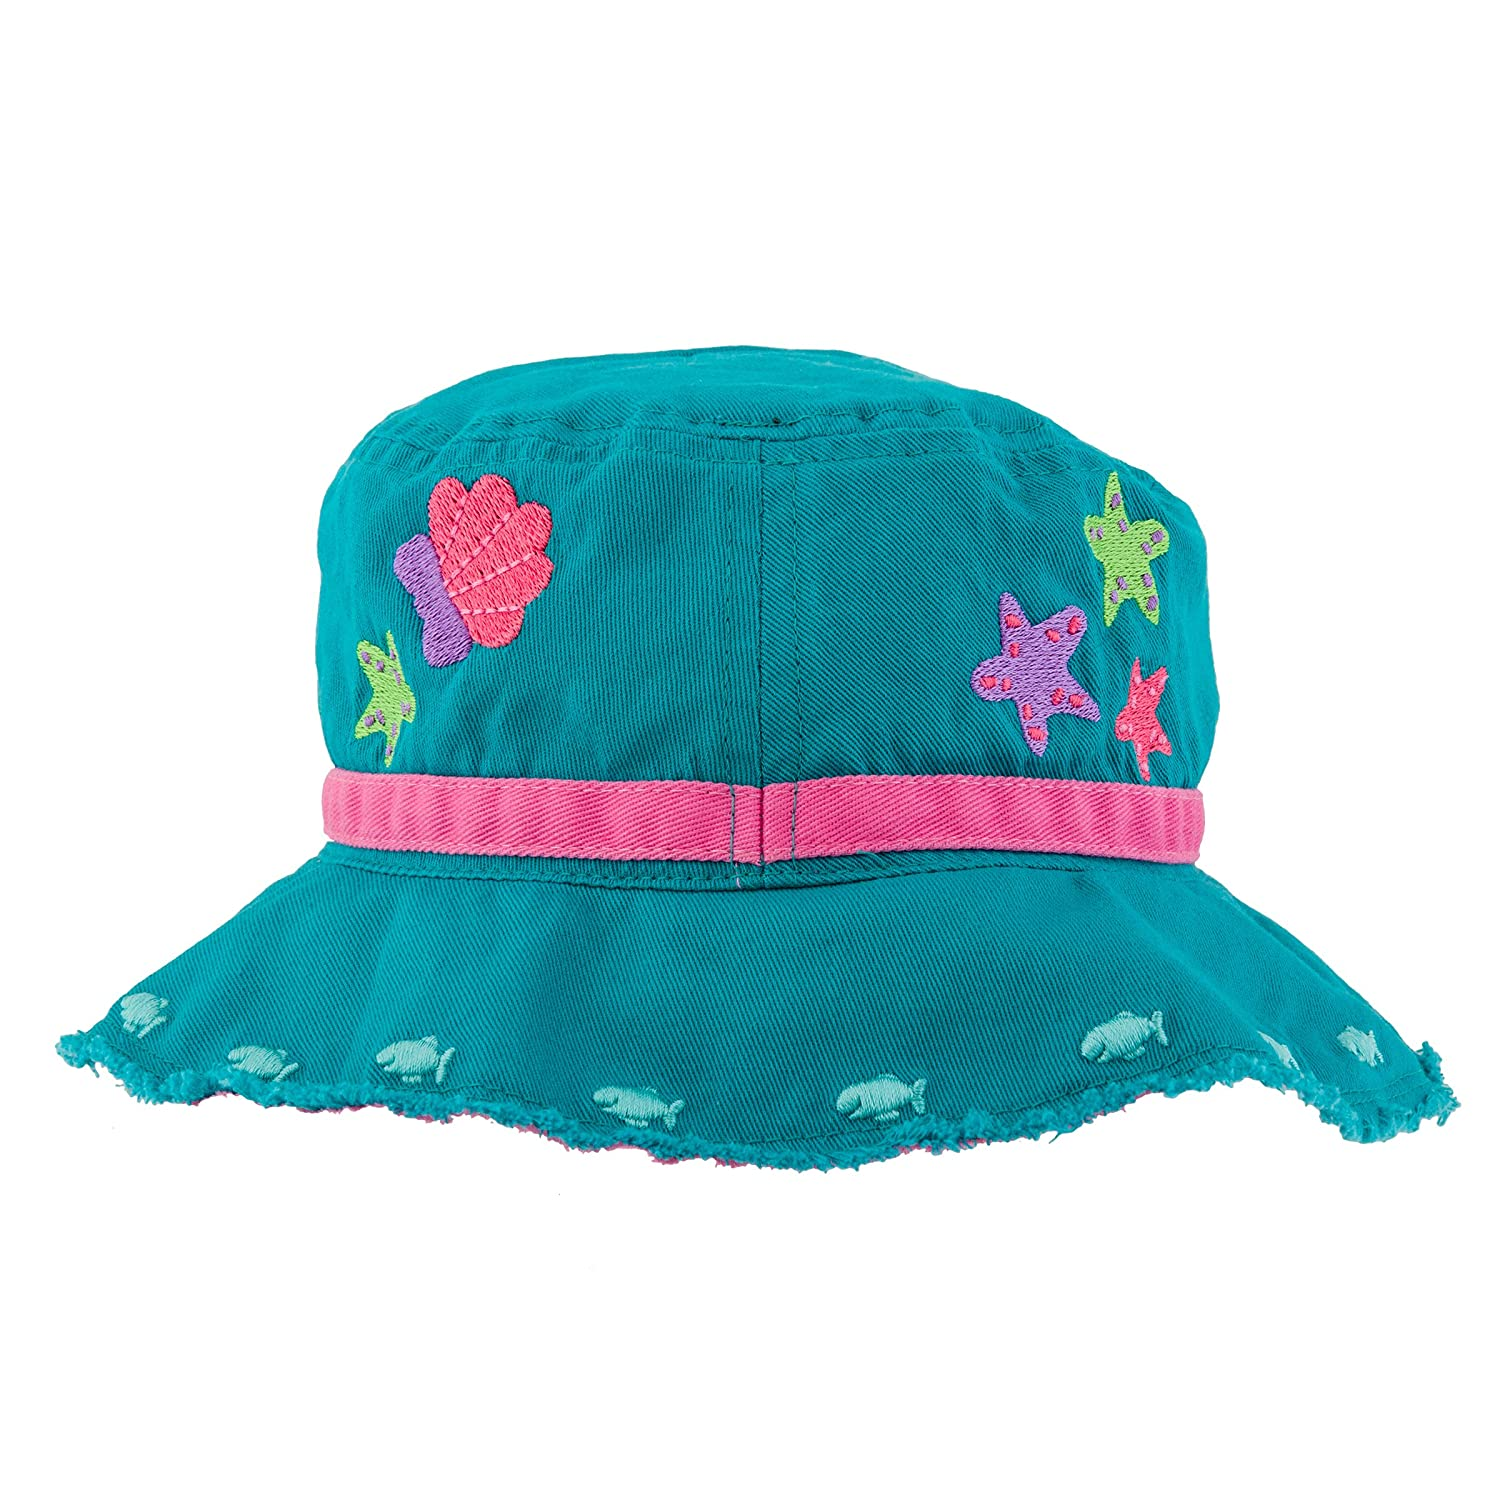 ce77339691e Amazon.com  Stephen Joseph Bucket Hat